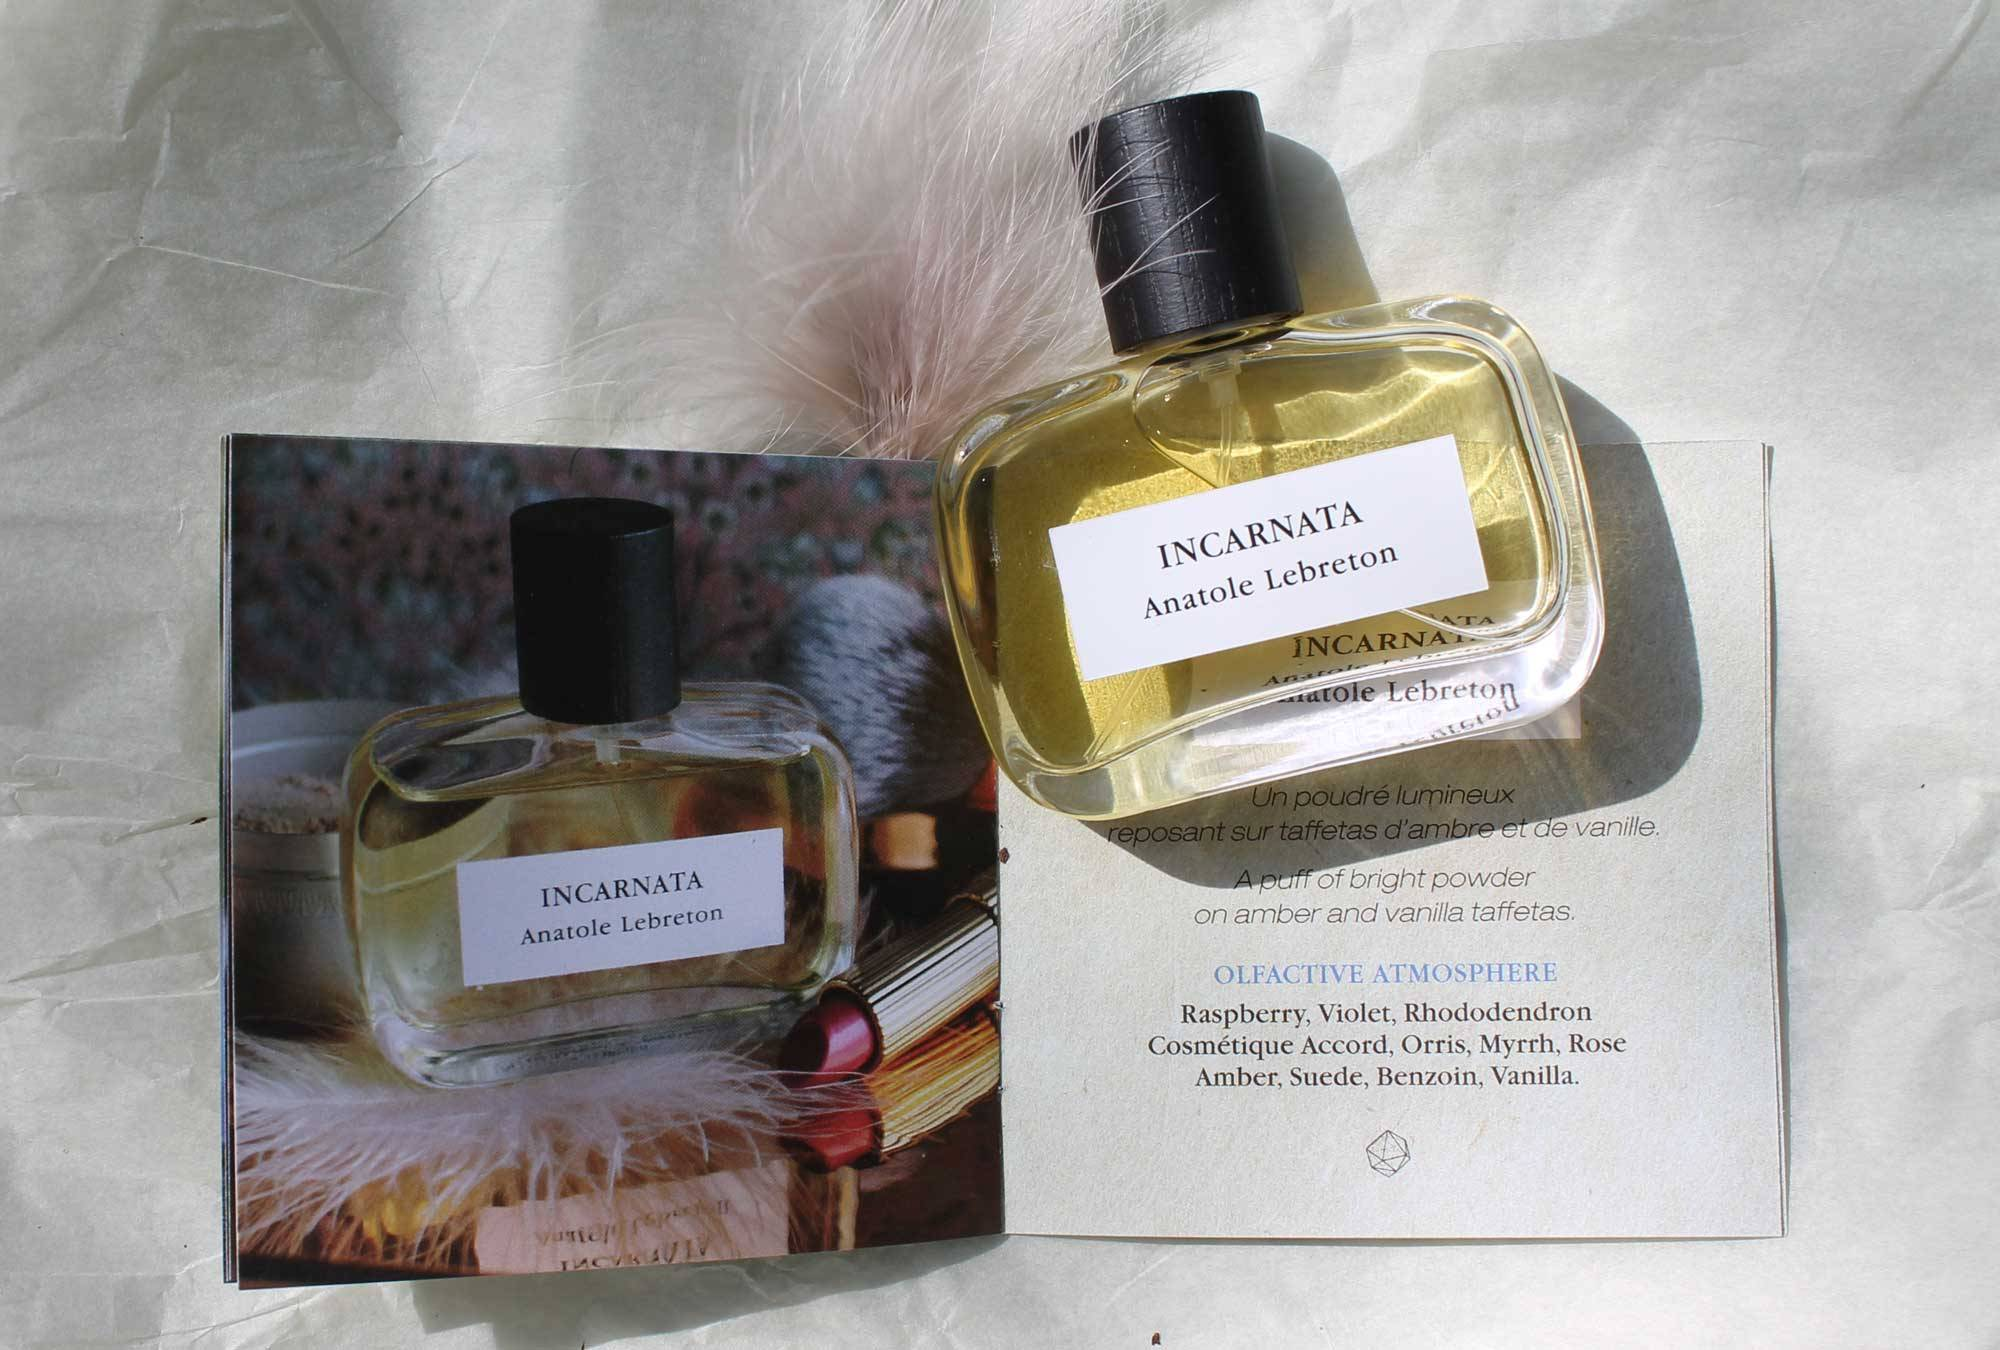 Communication Anatole Lebreton, Incarnata, parfum de niche